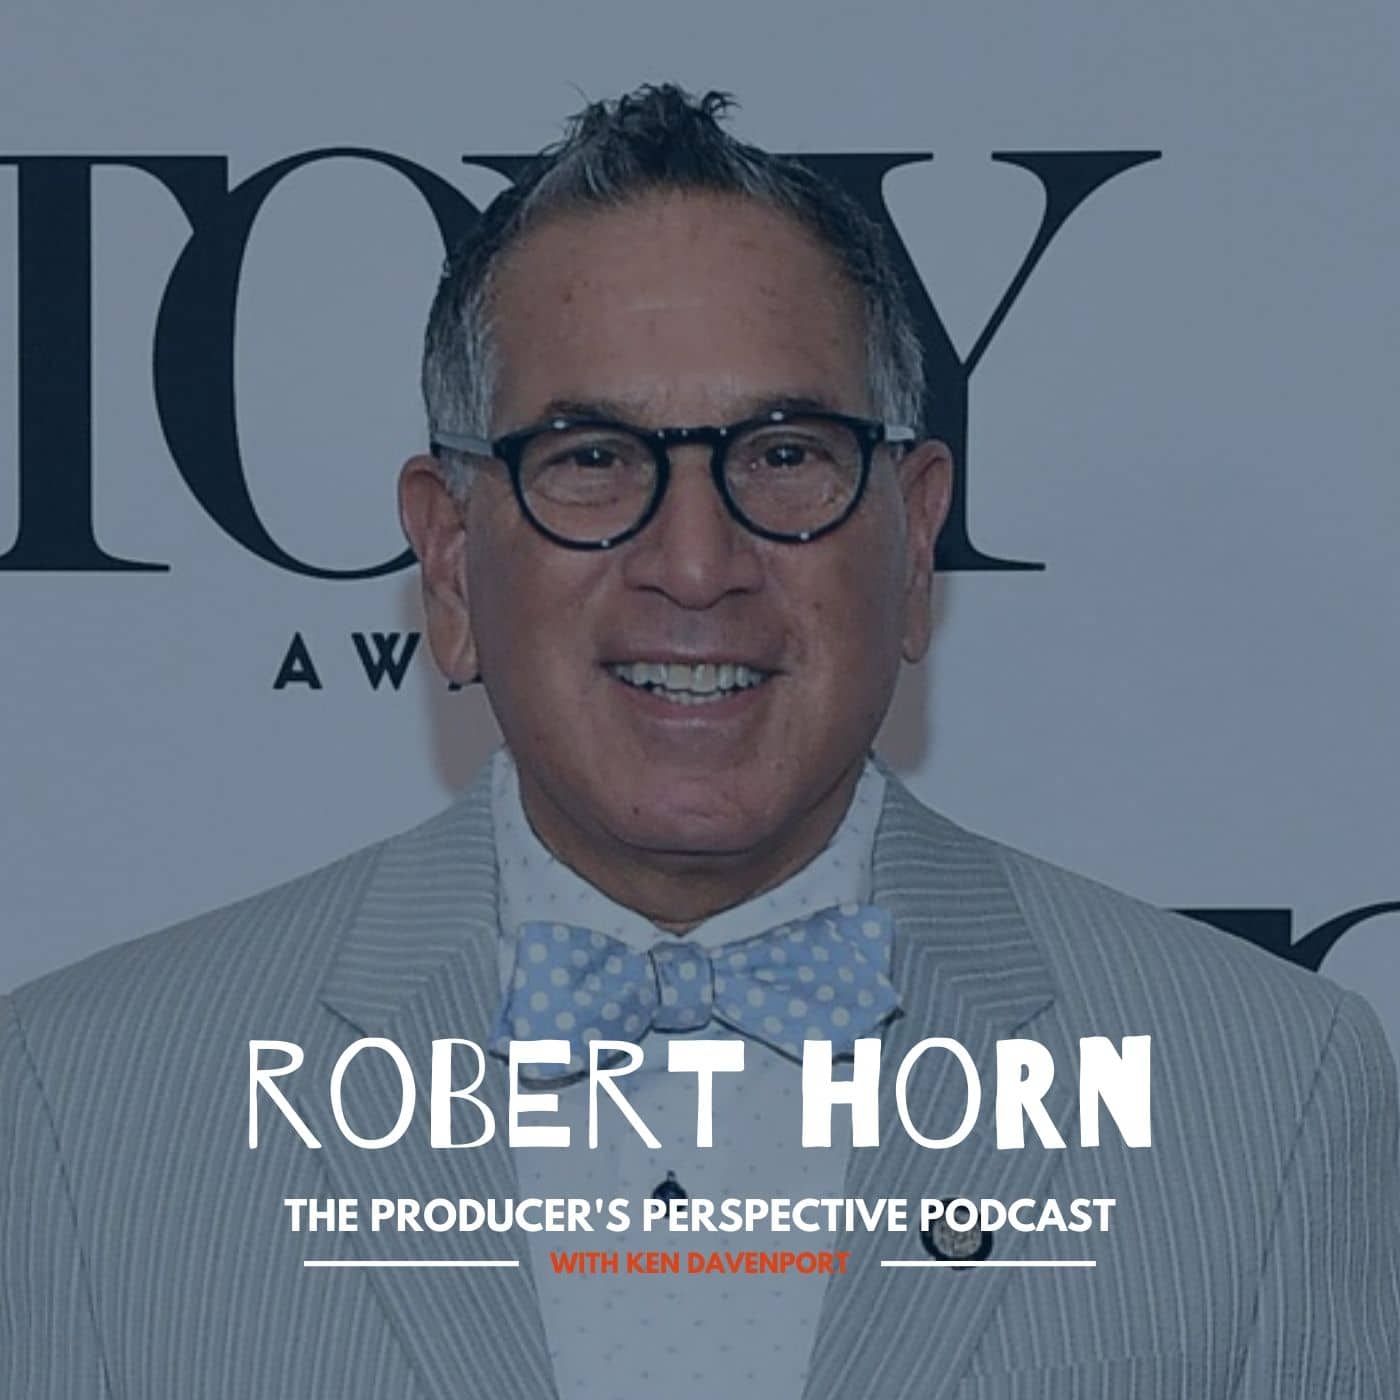 Ken Davenport's The Producer's Perspective Podcast Episode 189 - Robert Horn